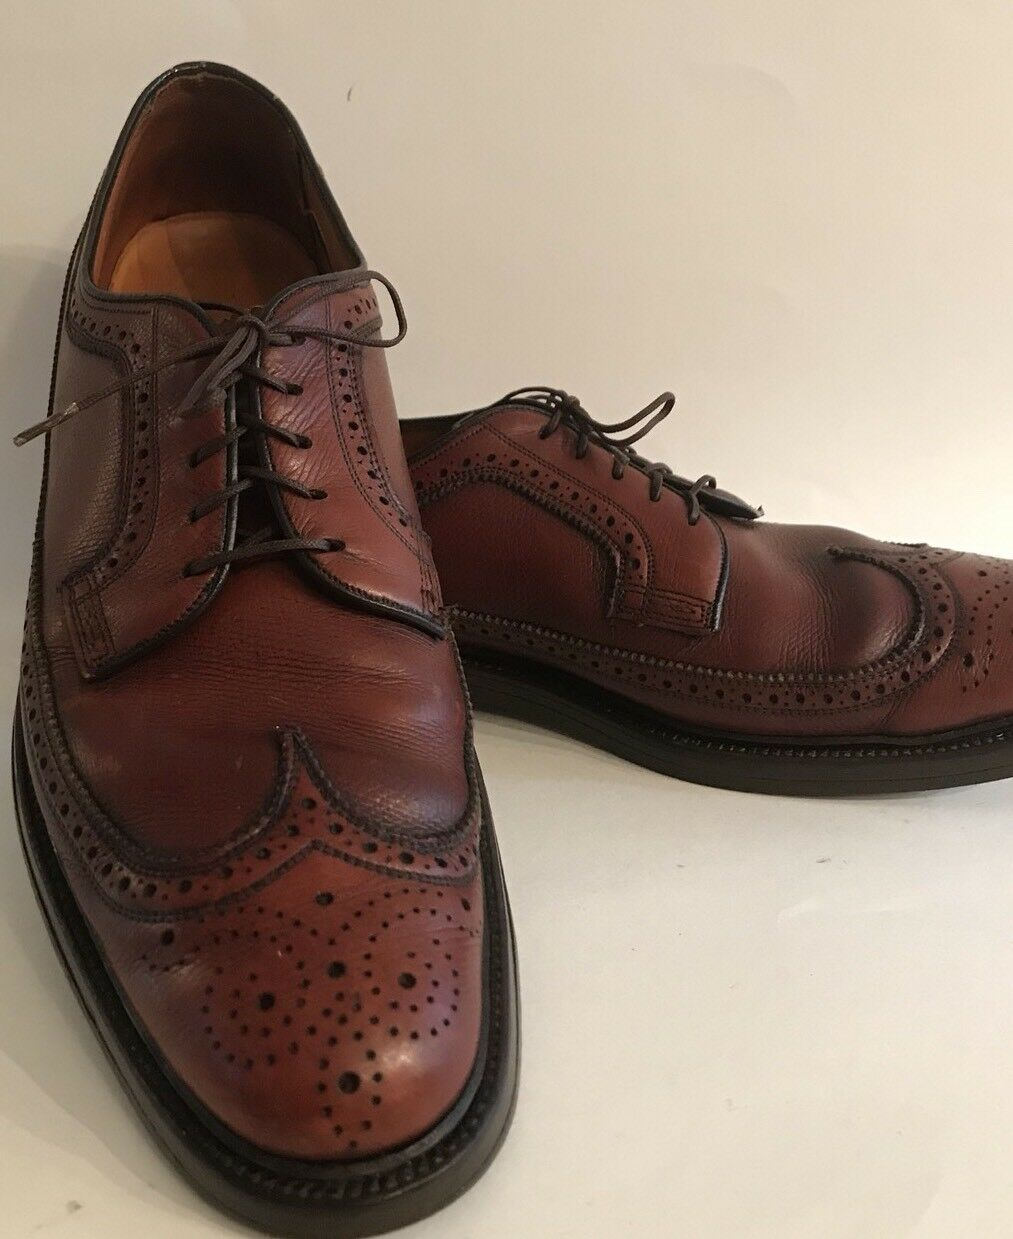 Florsheim royal Imperial Bout D'Aile marron 11 AA Narrow 5 Nail V-cale chaussures homme